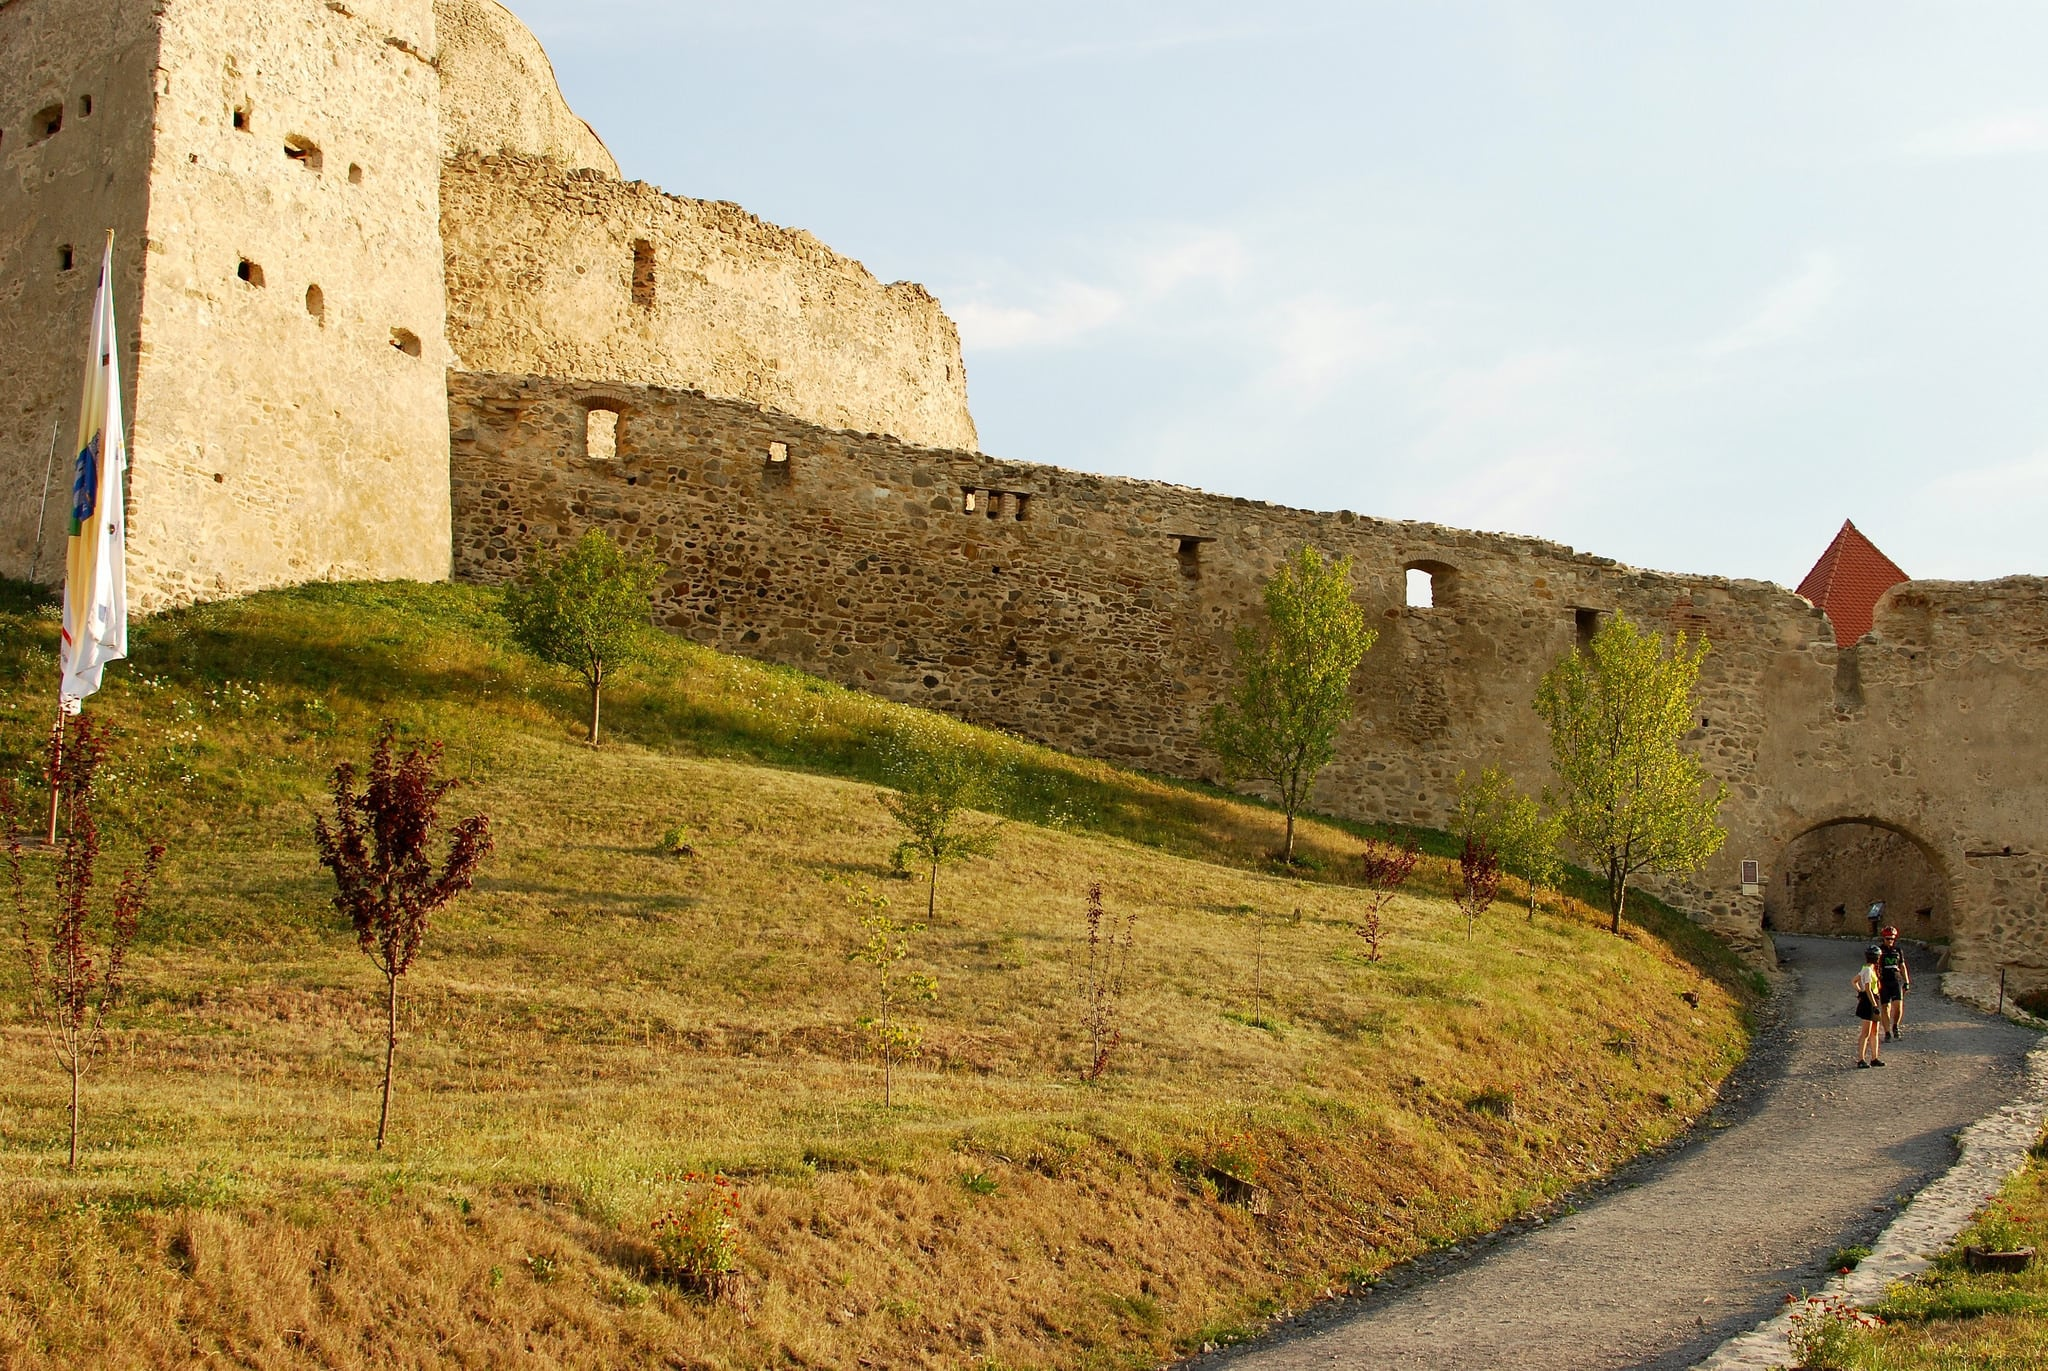 Image of Rupea Fortress. nikon august 2015 rupea d80